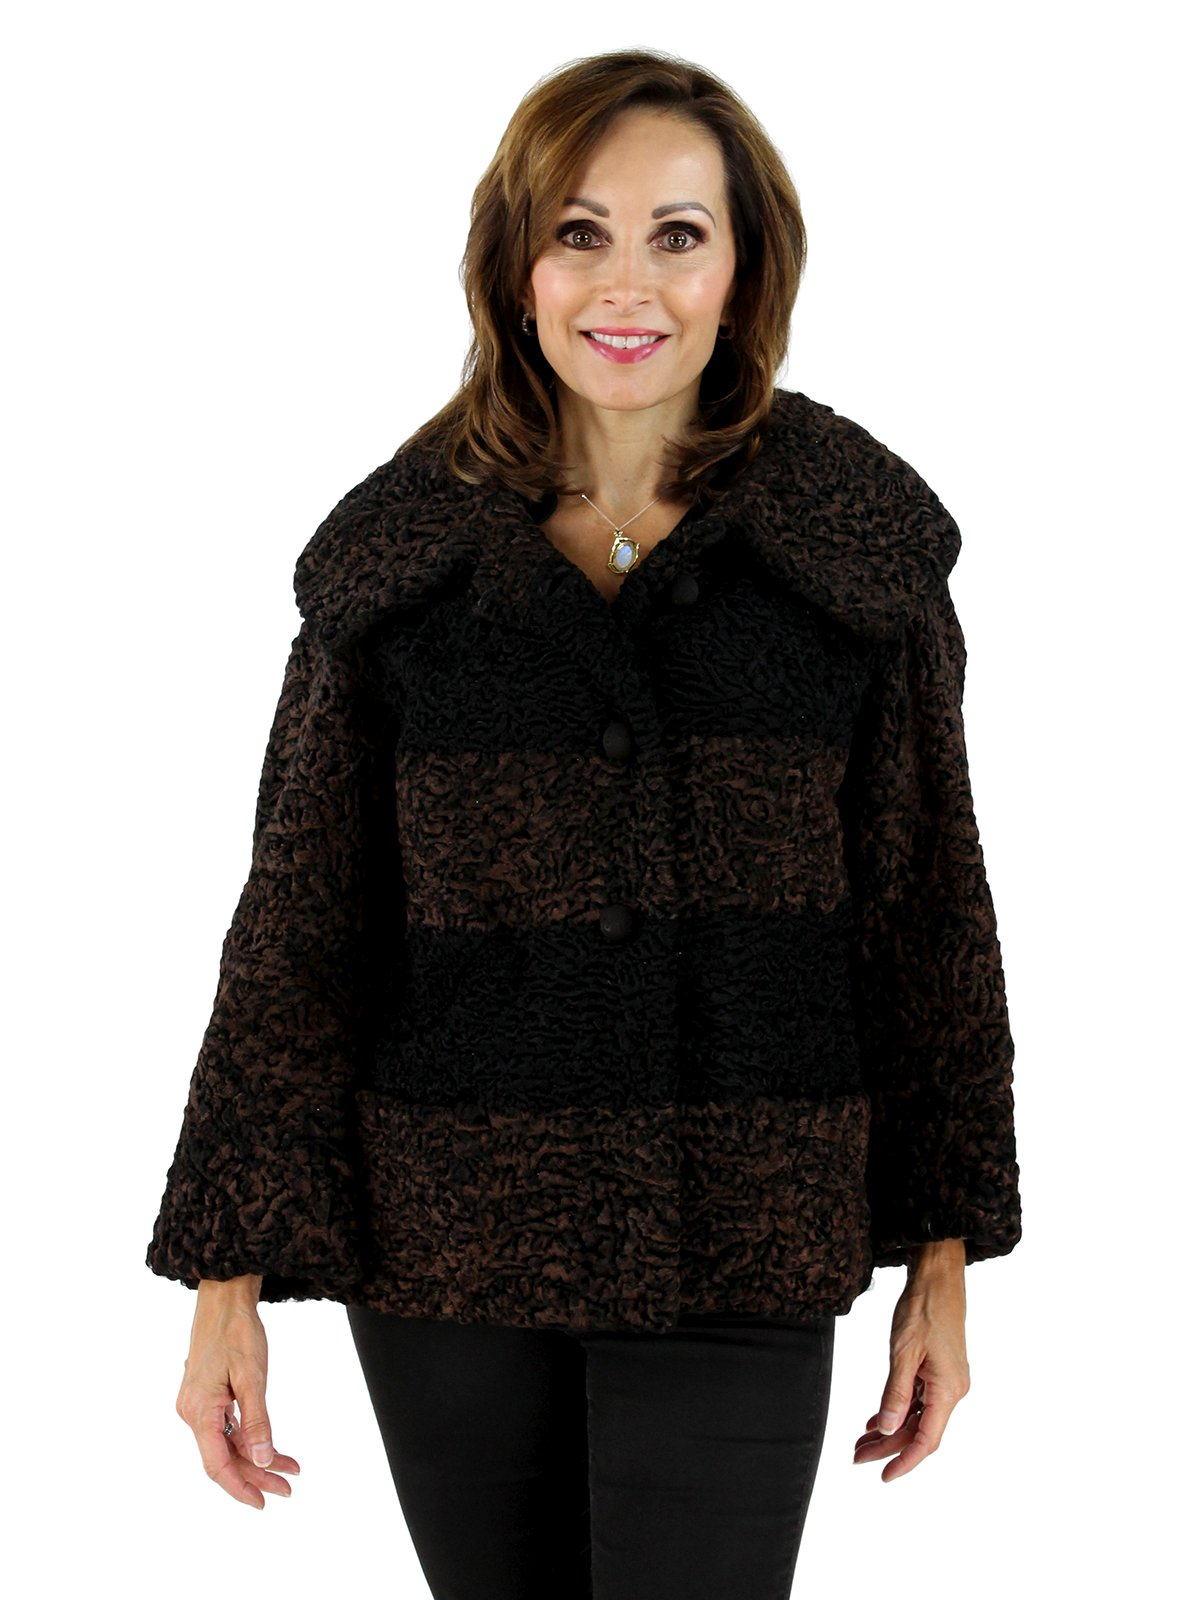 Woman's Brown and Black Persian Lamb Fur Jacket